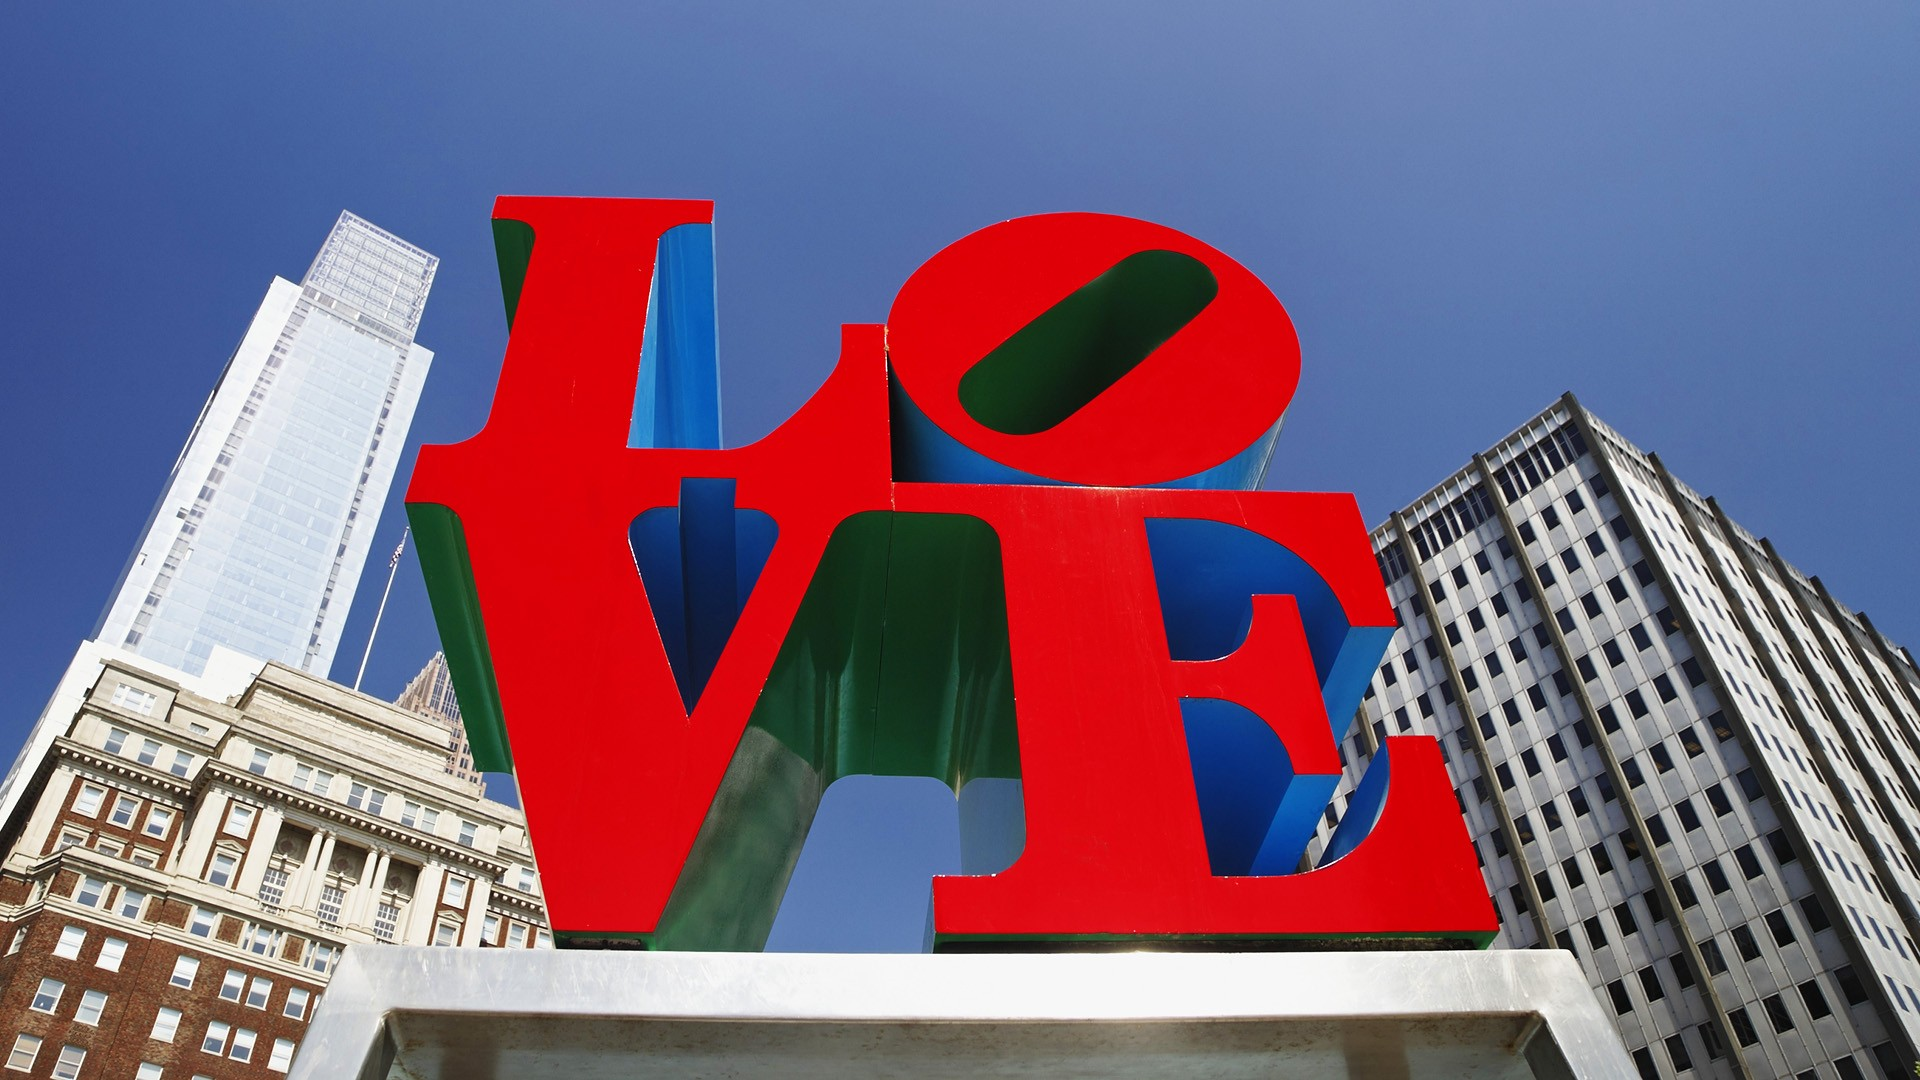 Love Philadelphia Wallpaper 1920x1080